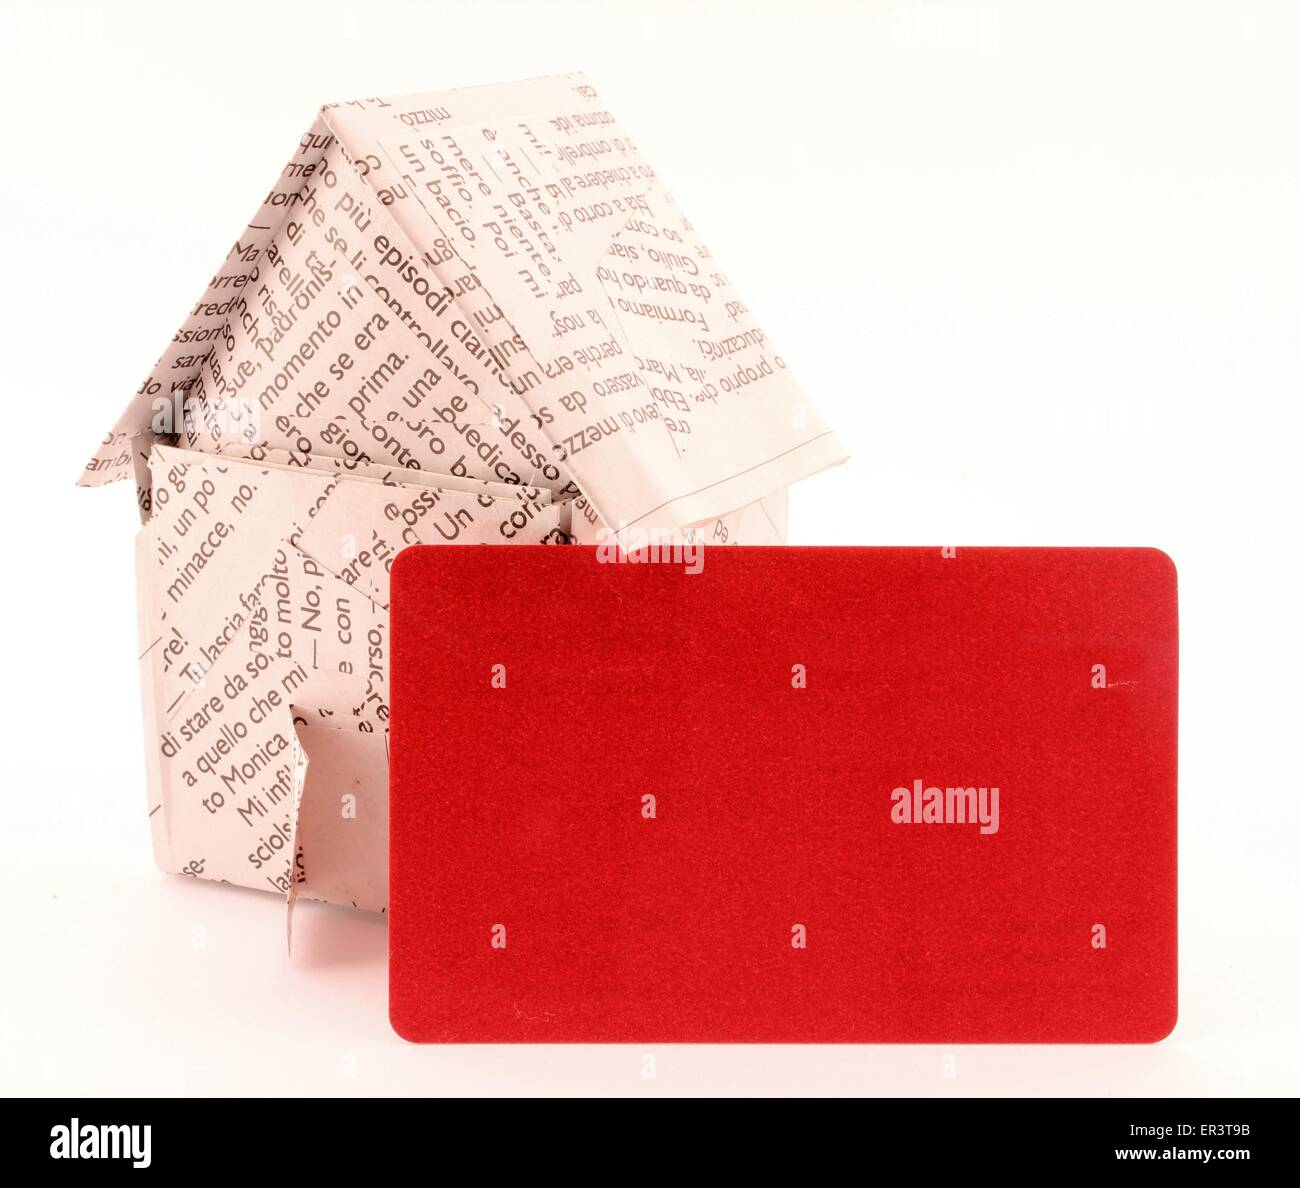 A red ticket for the description of real estate, paper house. - Stock Image